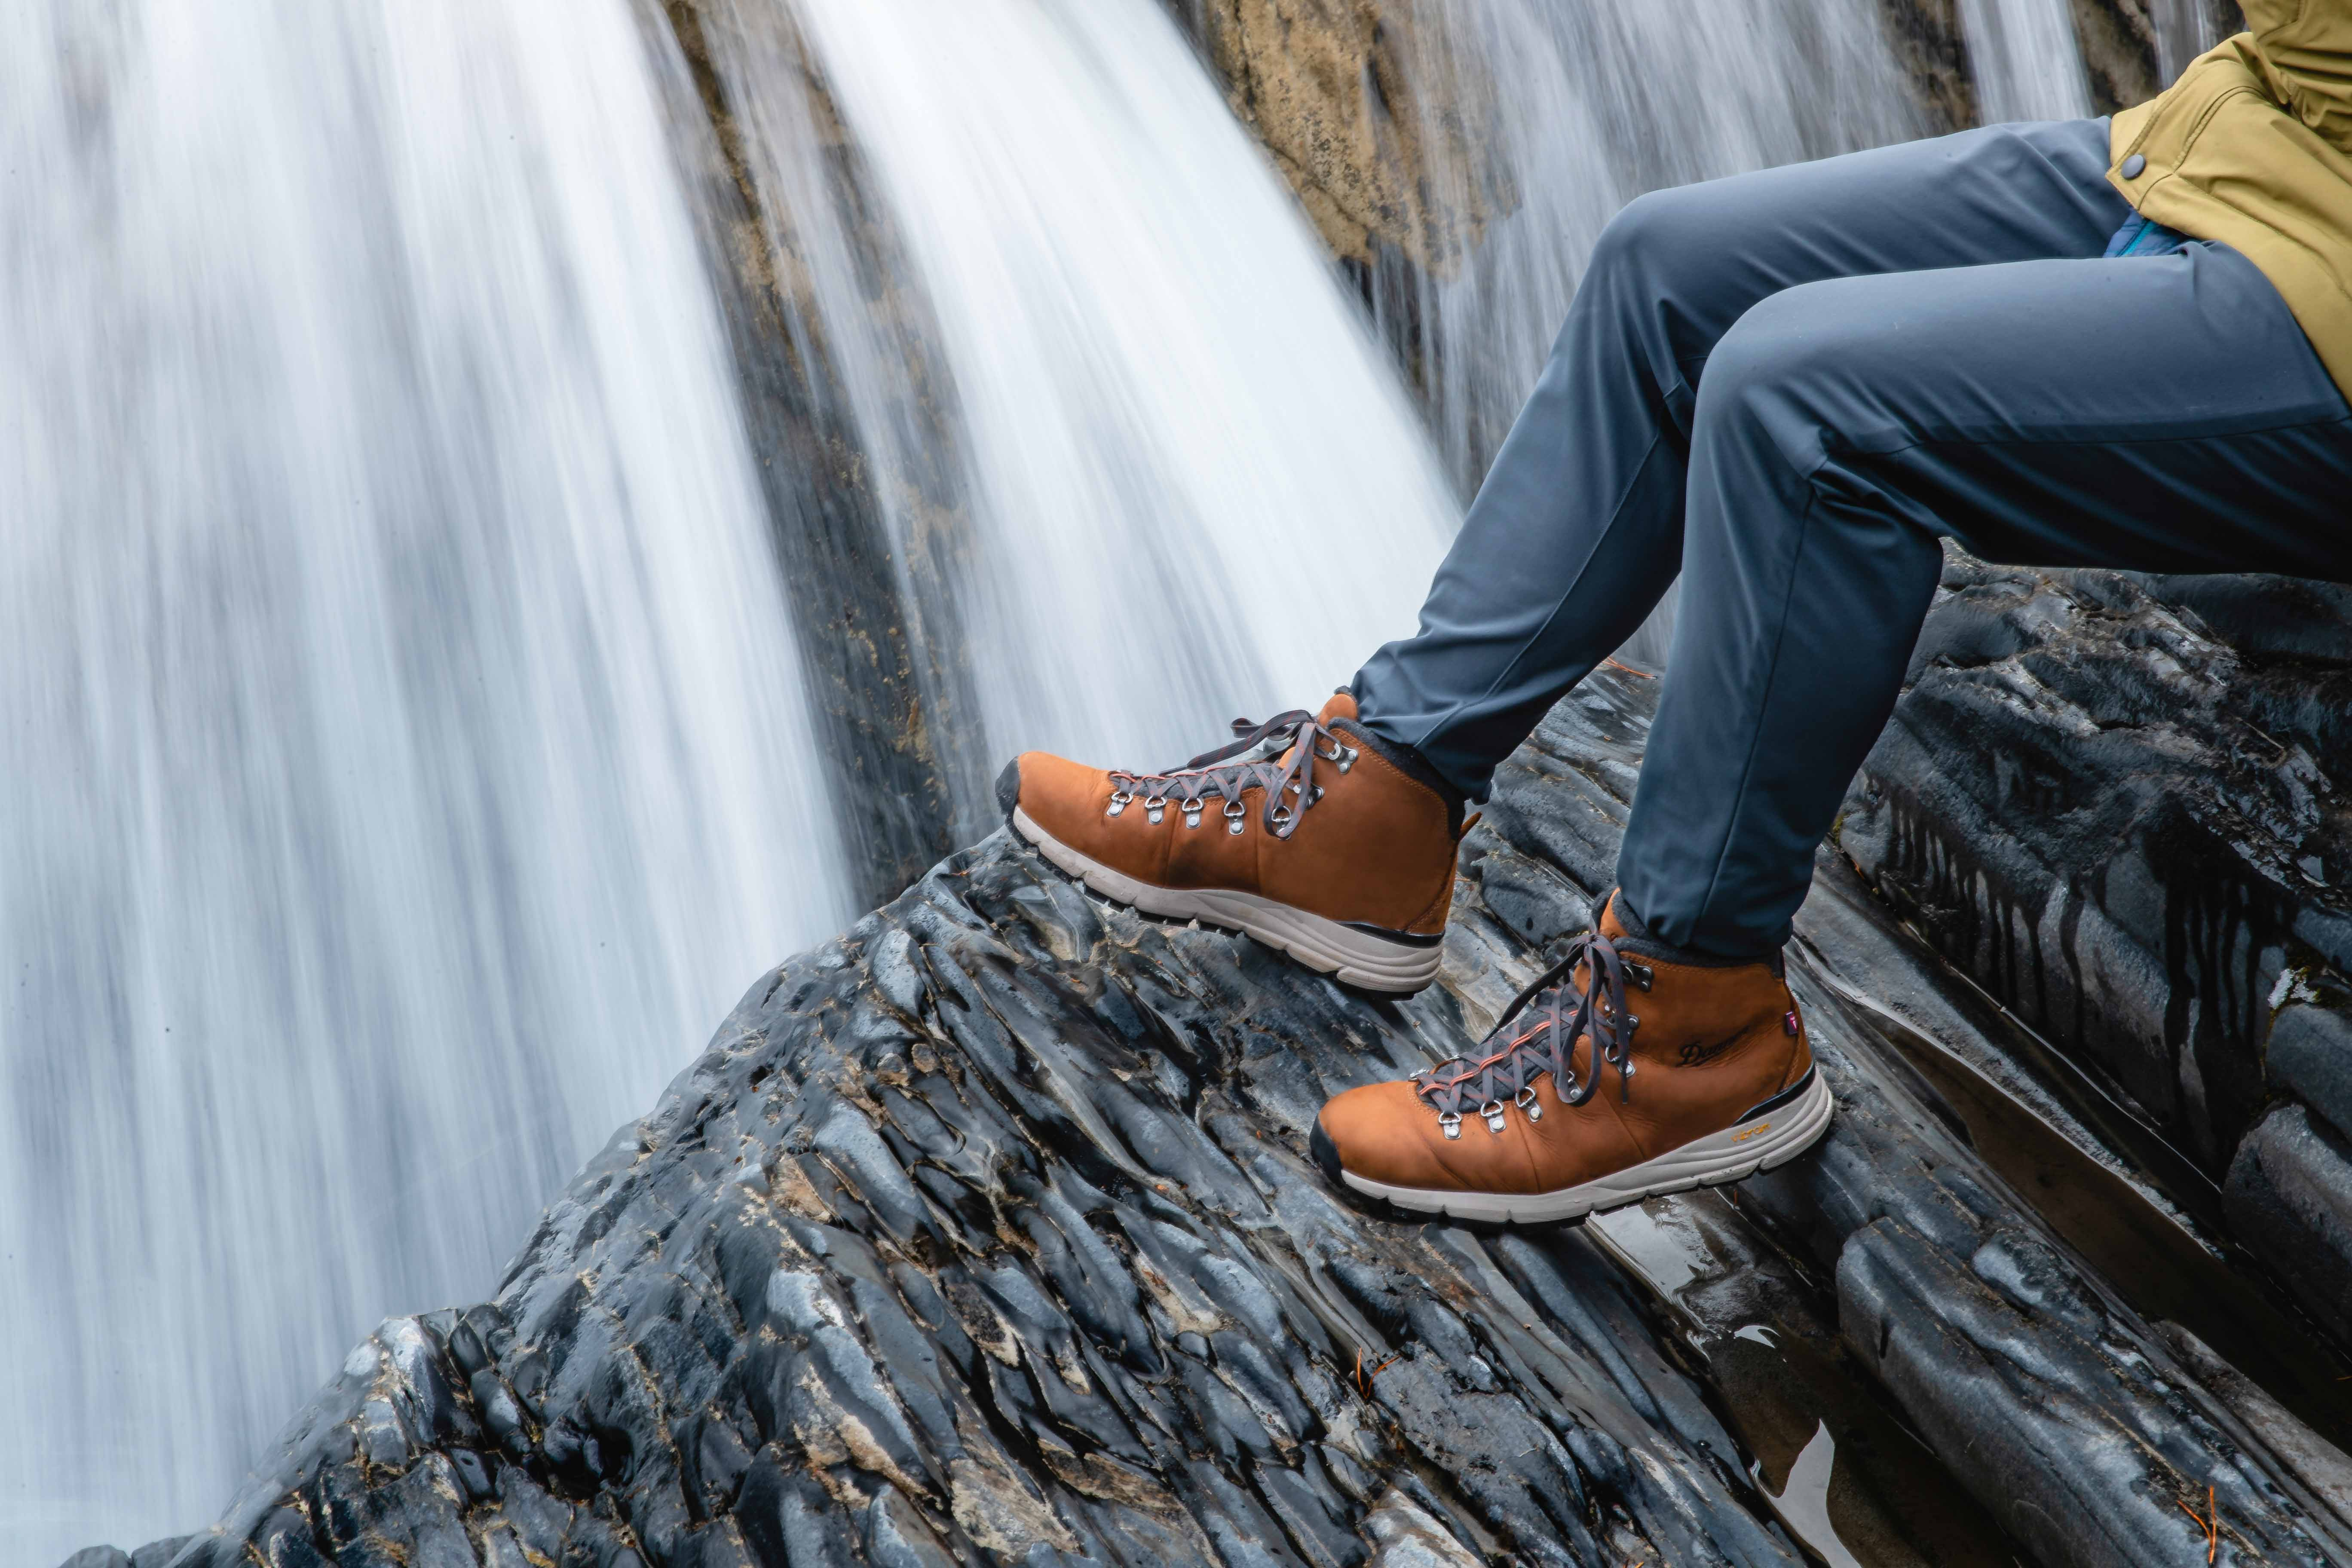 PhotographyCommercial Lifestyle photography of Danner Mountain 600 Boots in Canada by Andrew Studer of wearing leather danner boots Mountain 600 at a waterfall in Canada